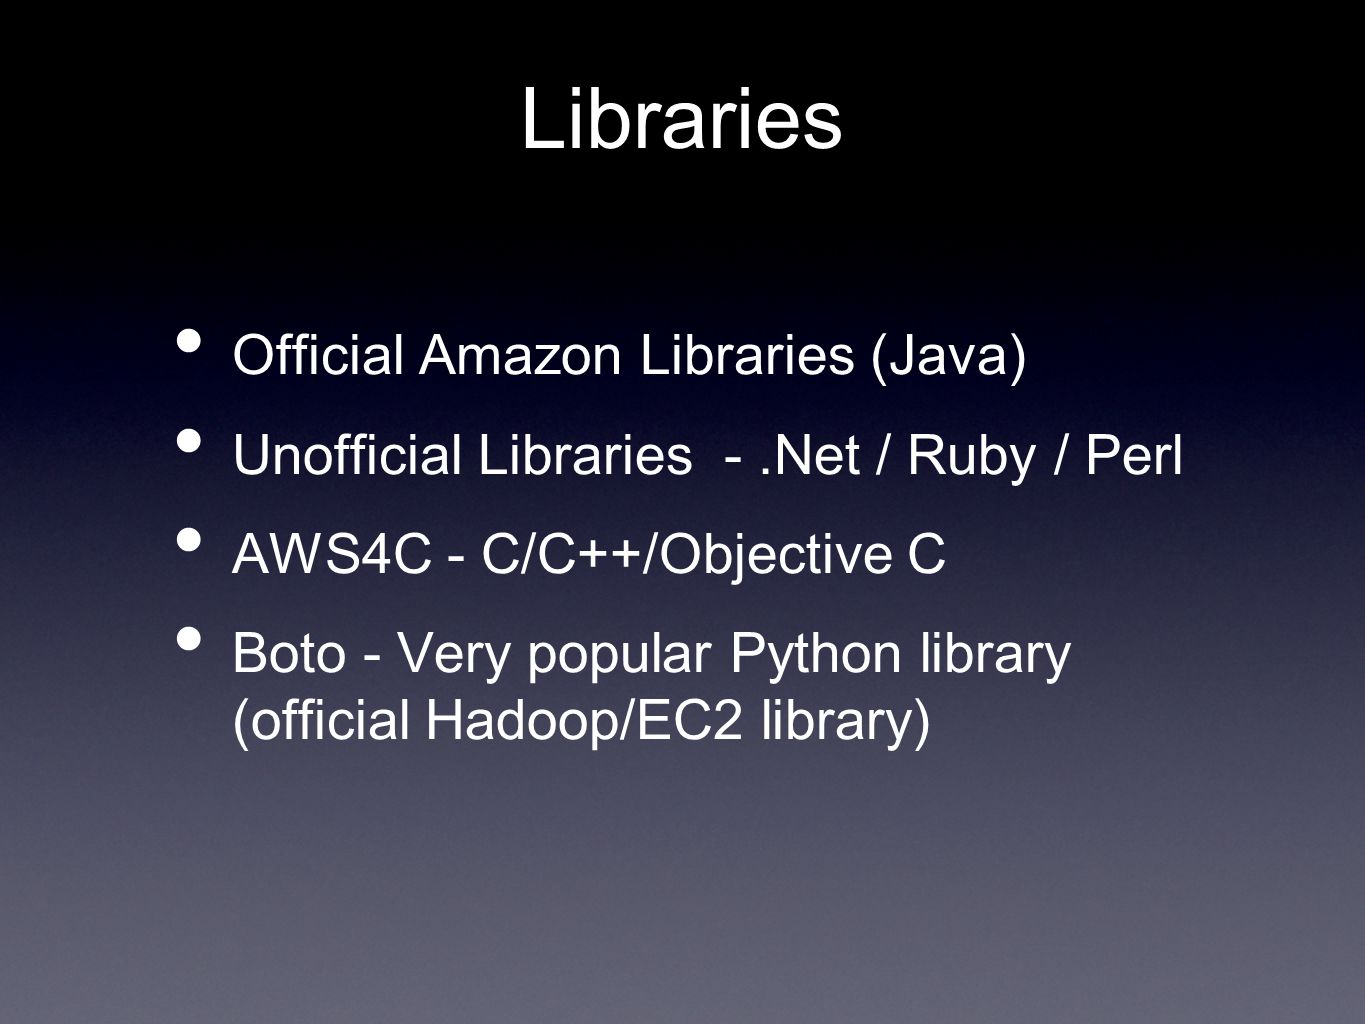 Libraries Official Amazon Libraries (Java) Unofficial Libraries -.Net / Ruby / Perl AWS4C - C/C++/Objective C Boto - Very popular Python library (official Hadoop/EC2 library)